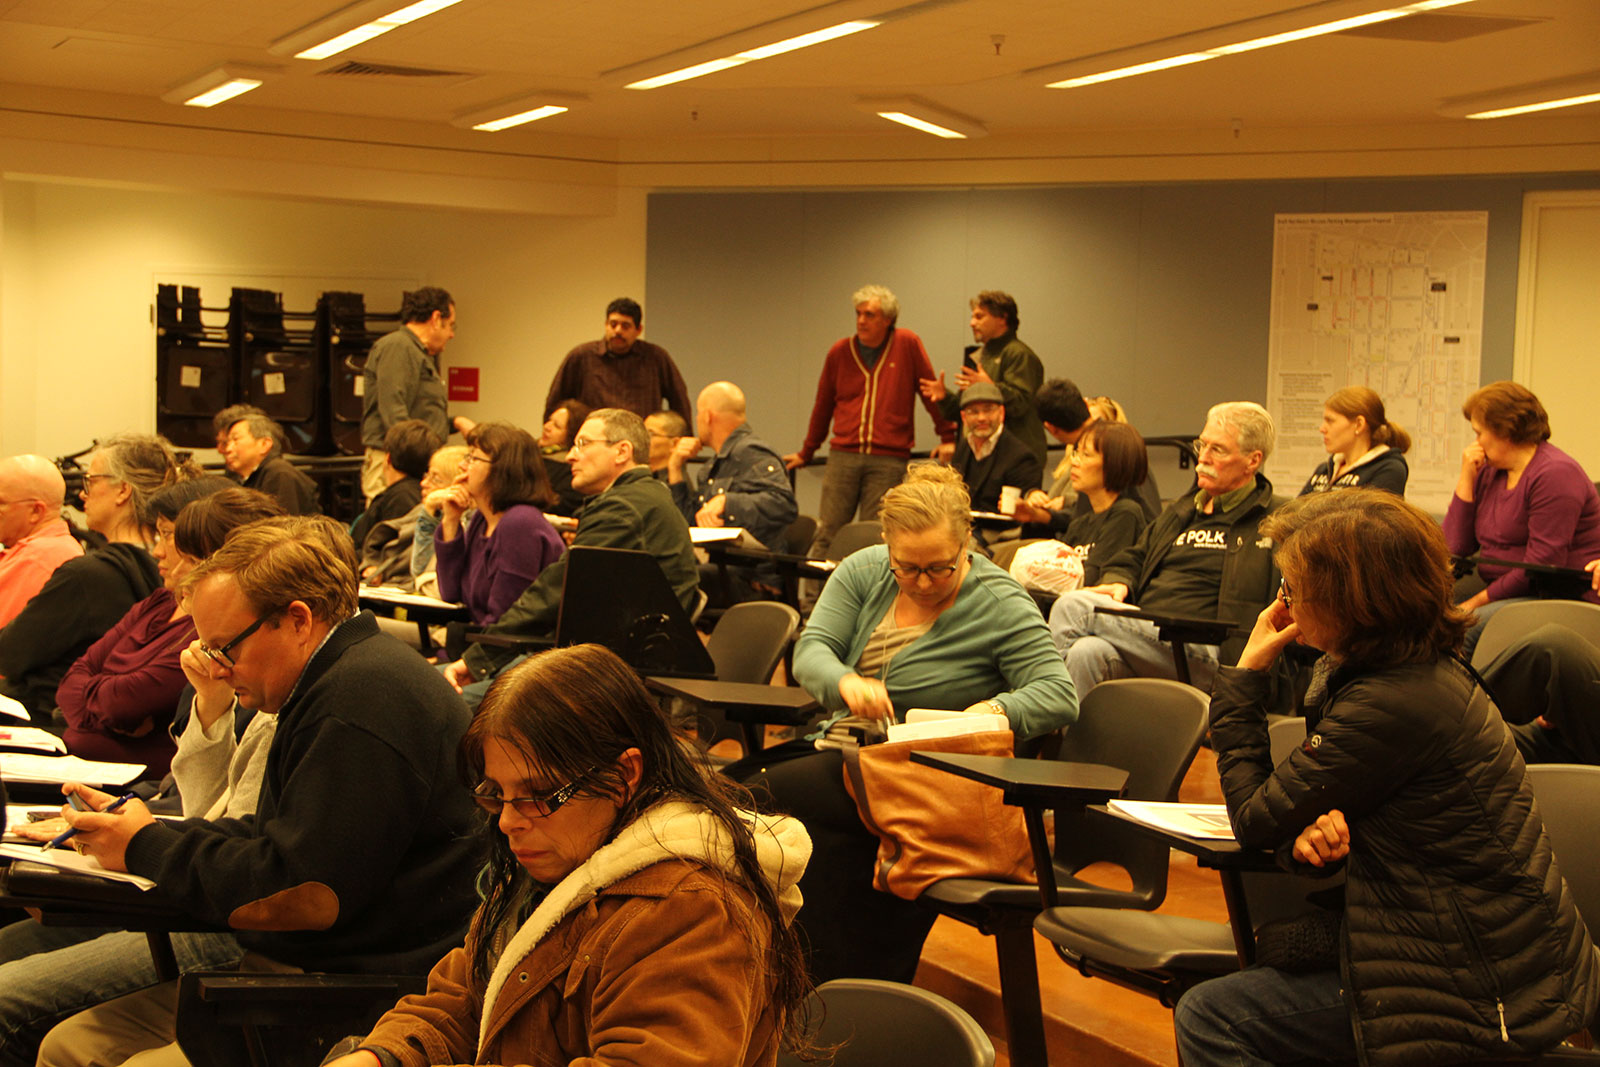 Public meeting at John O'Connell High School, March 21, 2013. Photo by Tay Wiles